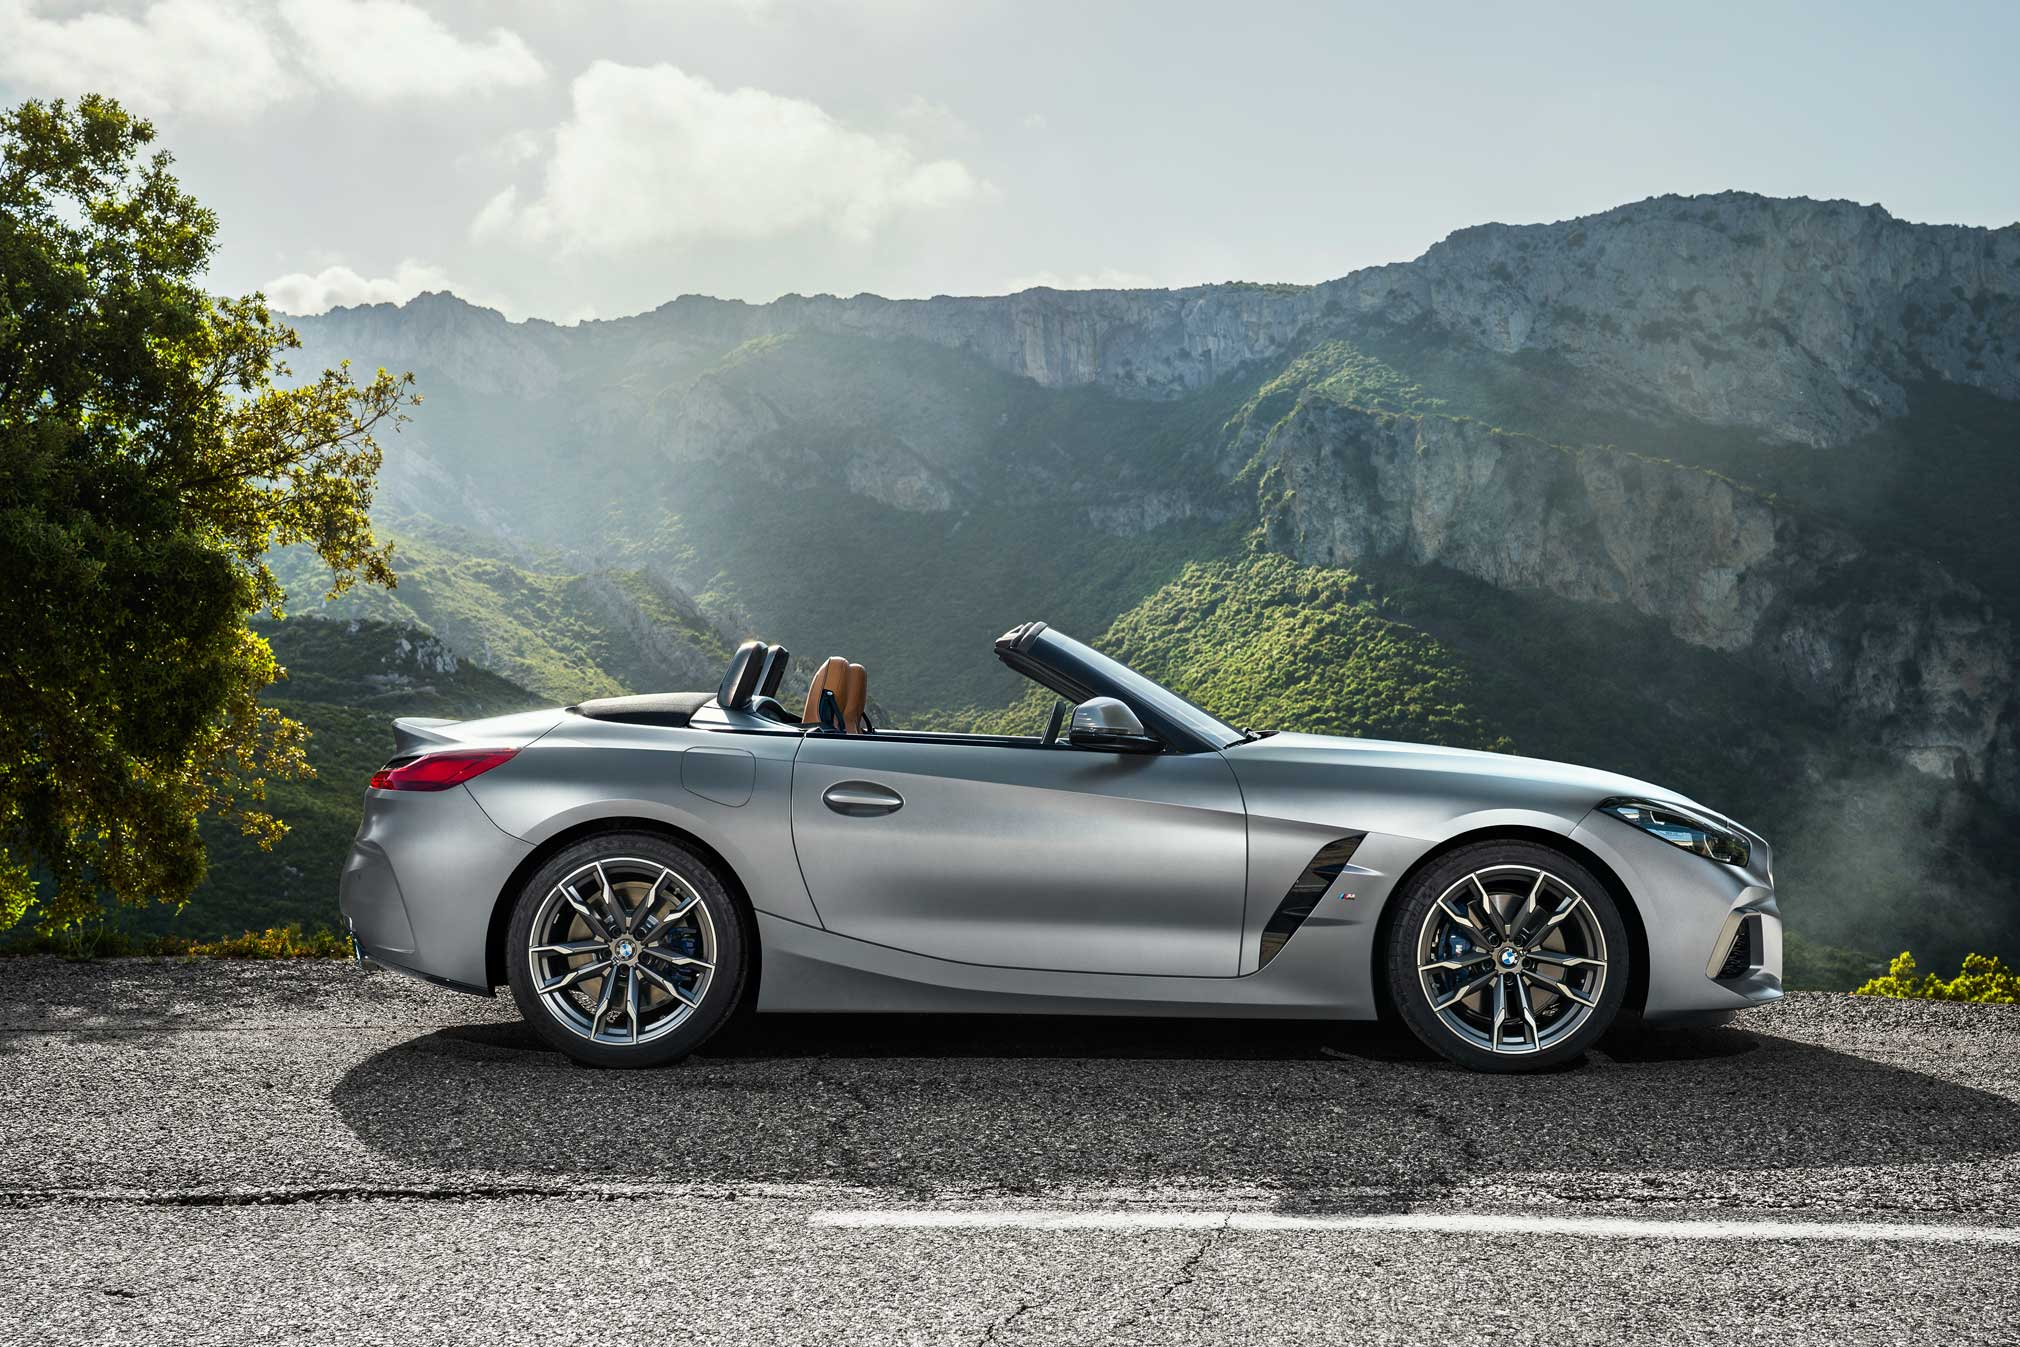 14 All New 2020 BMW Z4 M Roadster Wallpaper